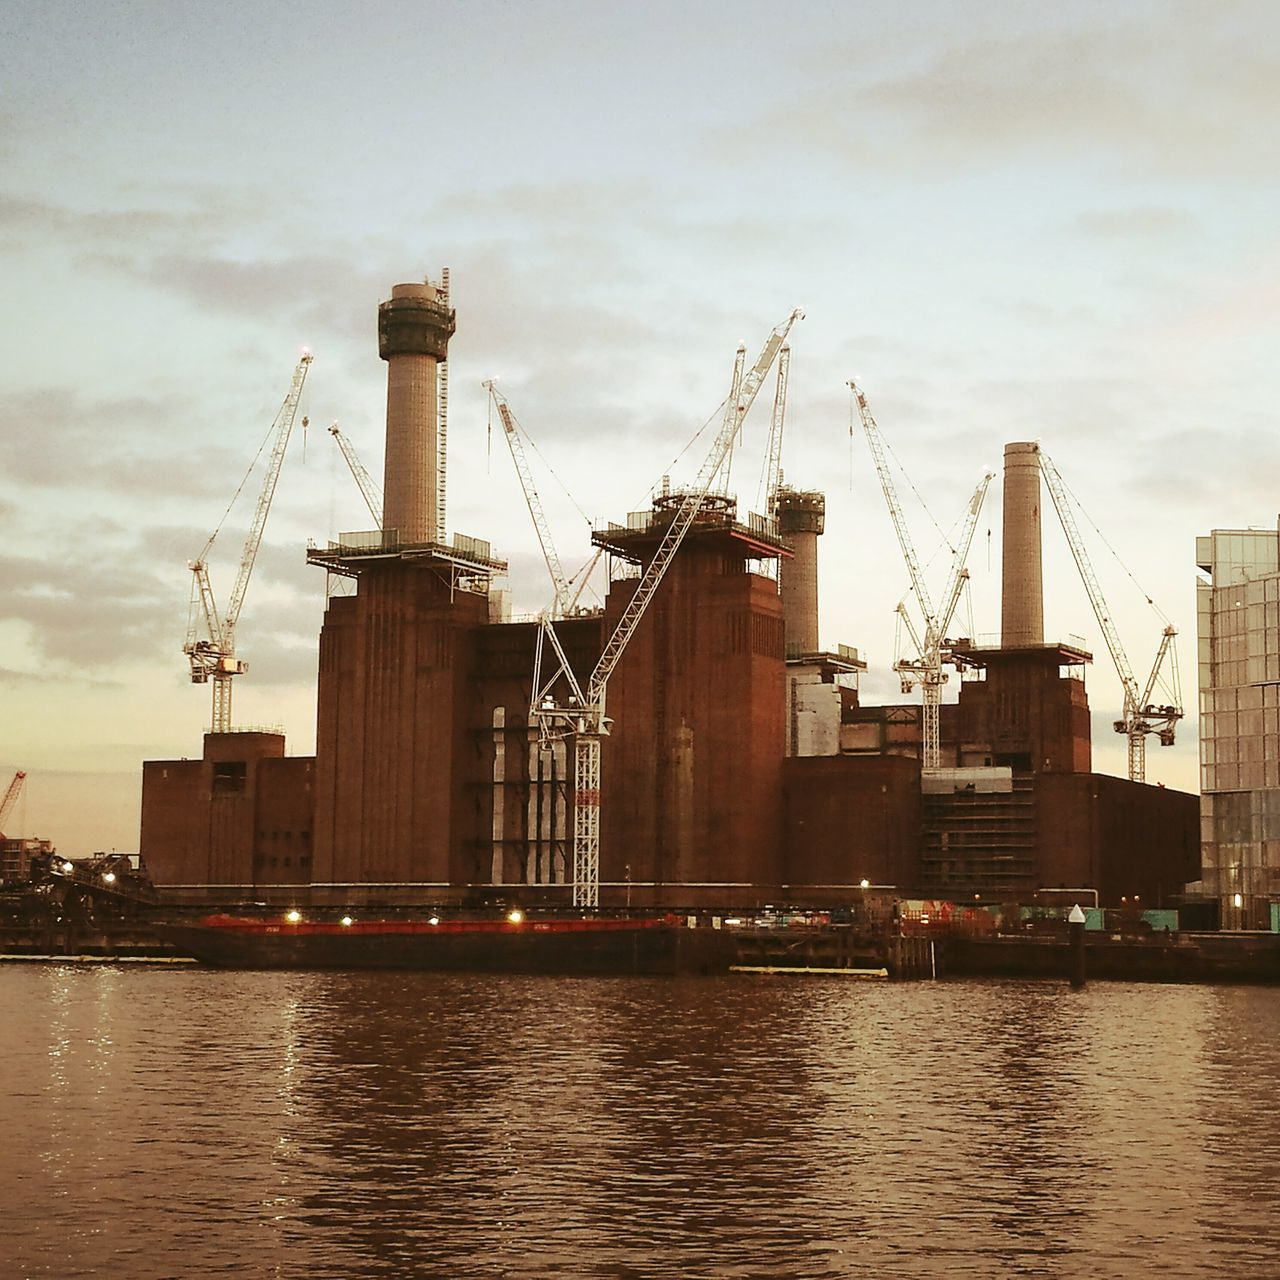 London River Thames Cranes And Construction Battersea Power Station EyeEmNewHere